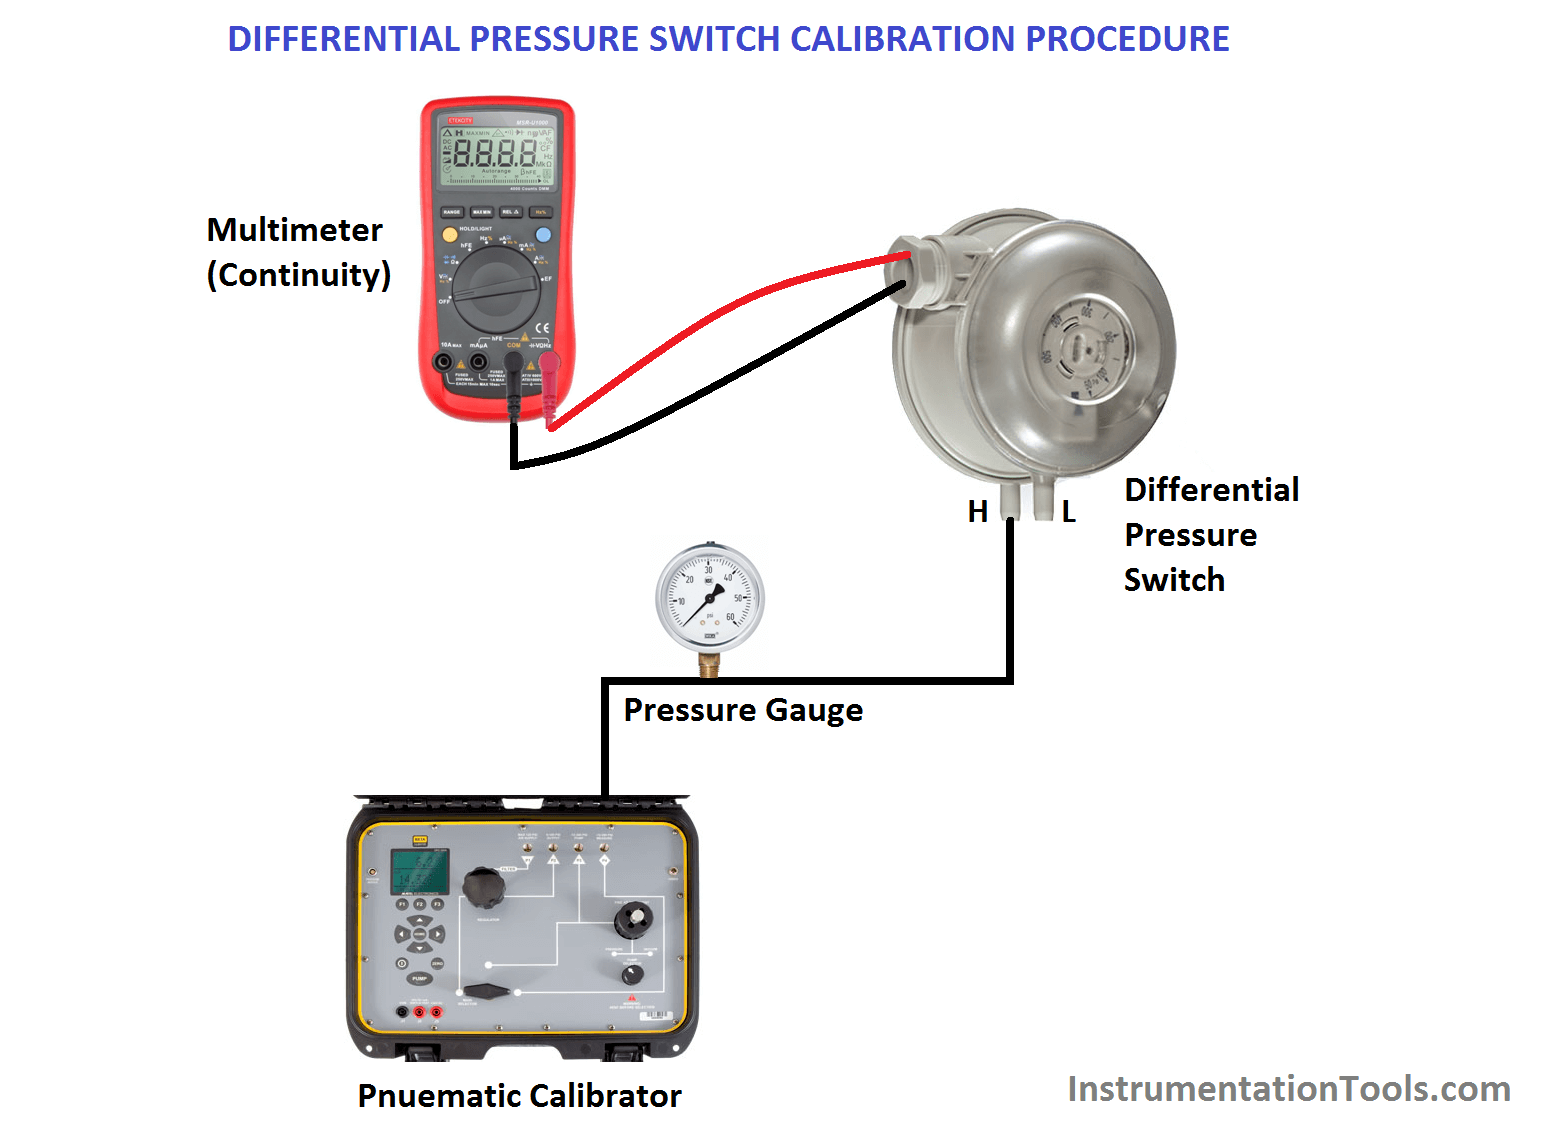 Differential Pressure Switch Calibration Procedure - Copy